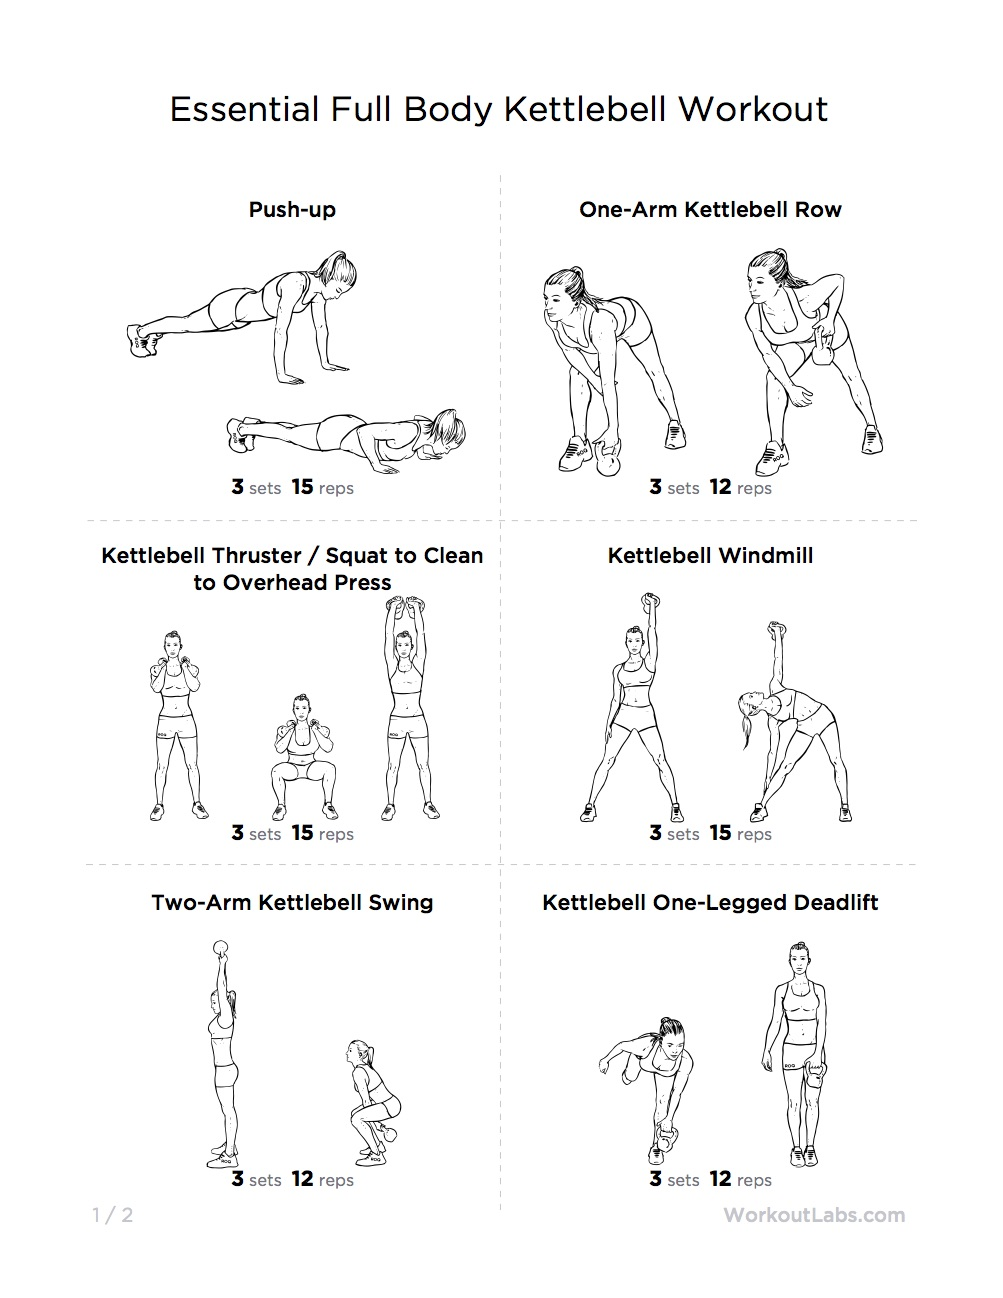 Essential Full Body Kettlebell Printable Workout for Men ...